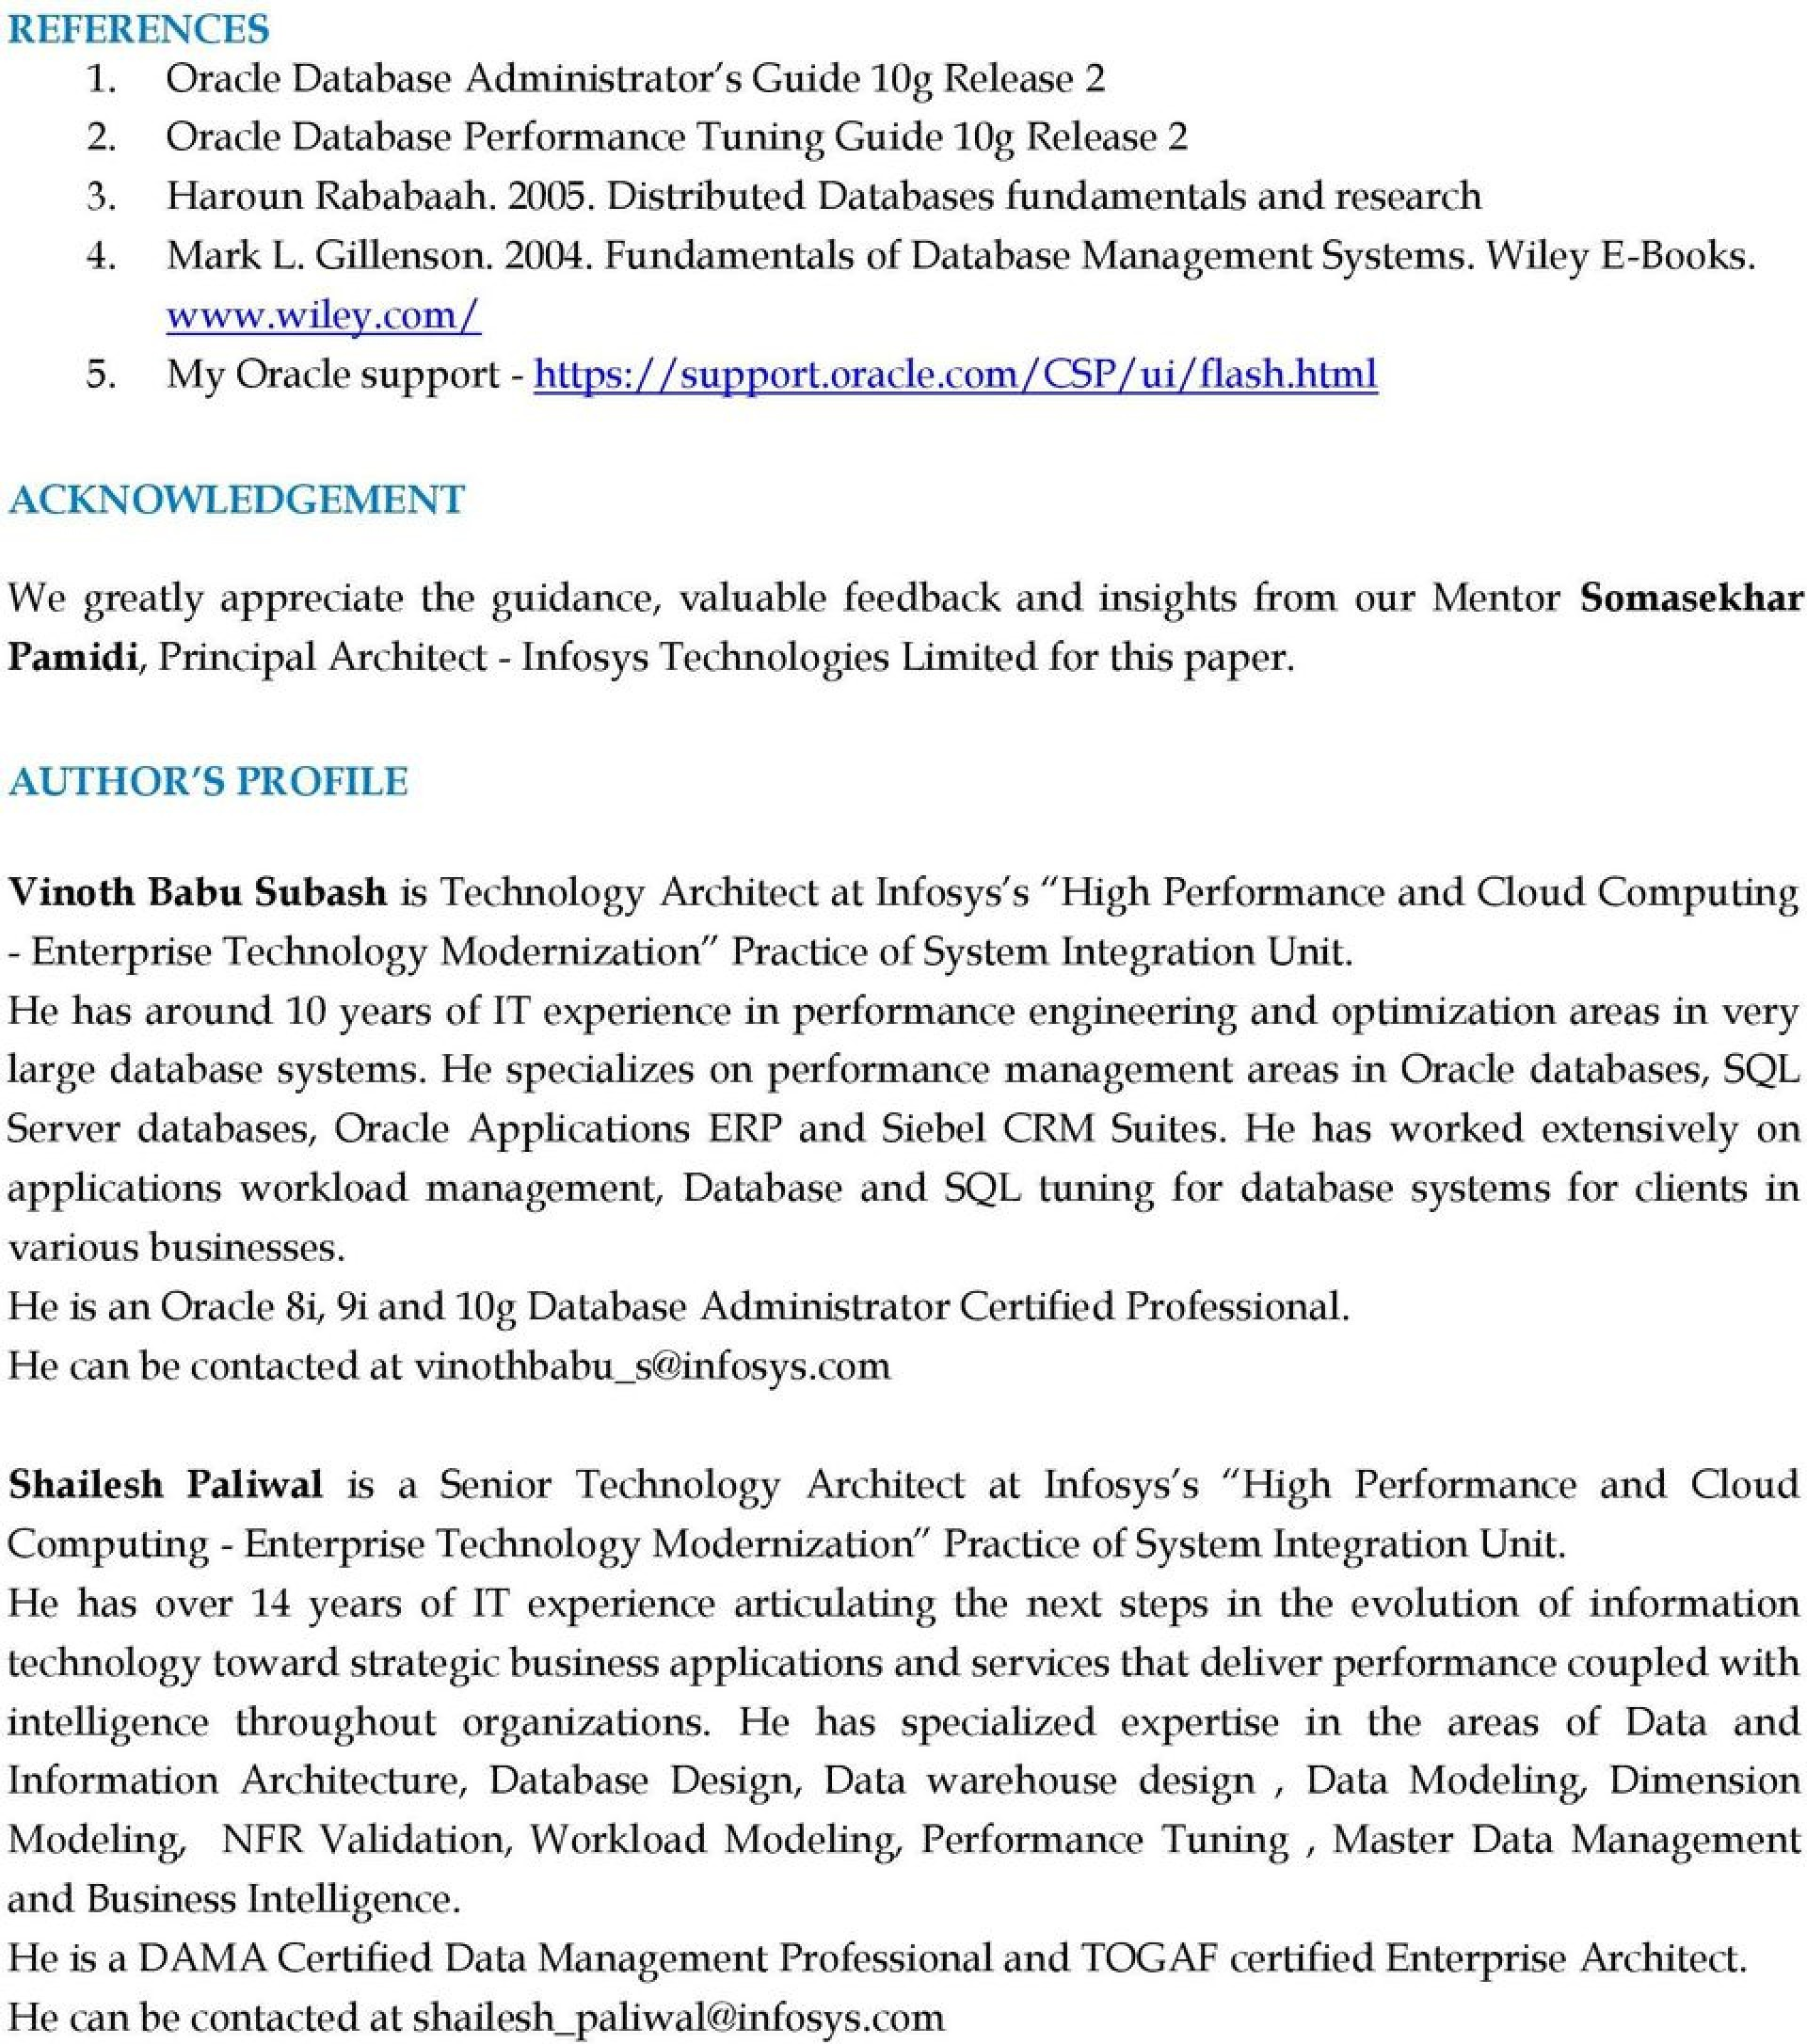 019 Research Paper Database Page 14 Sensational Academic Article On Security Pdf Ieee 1920